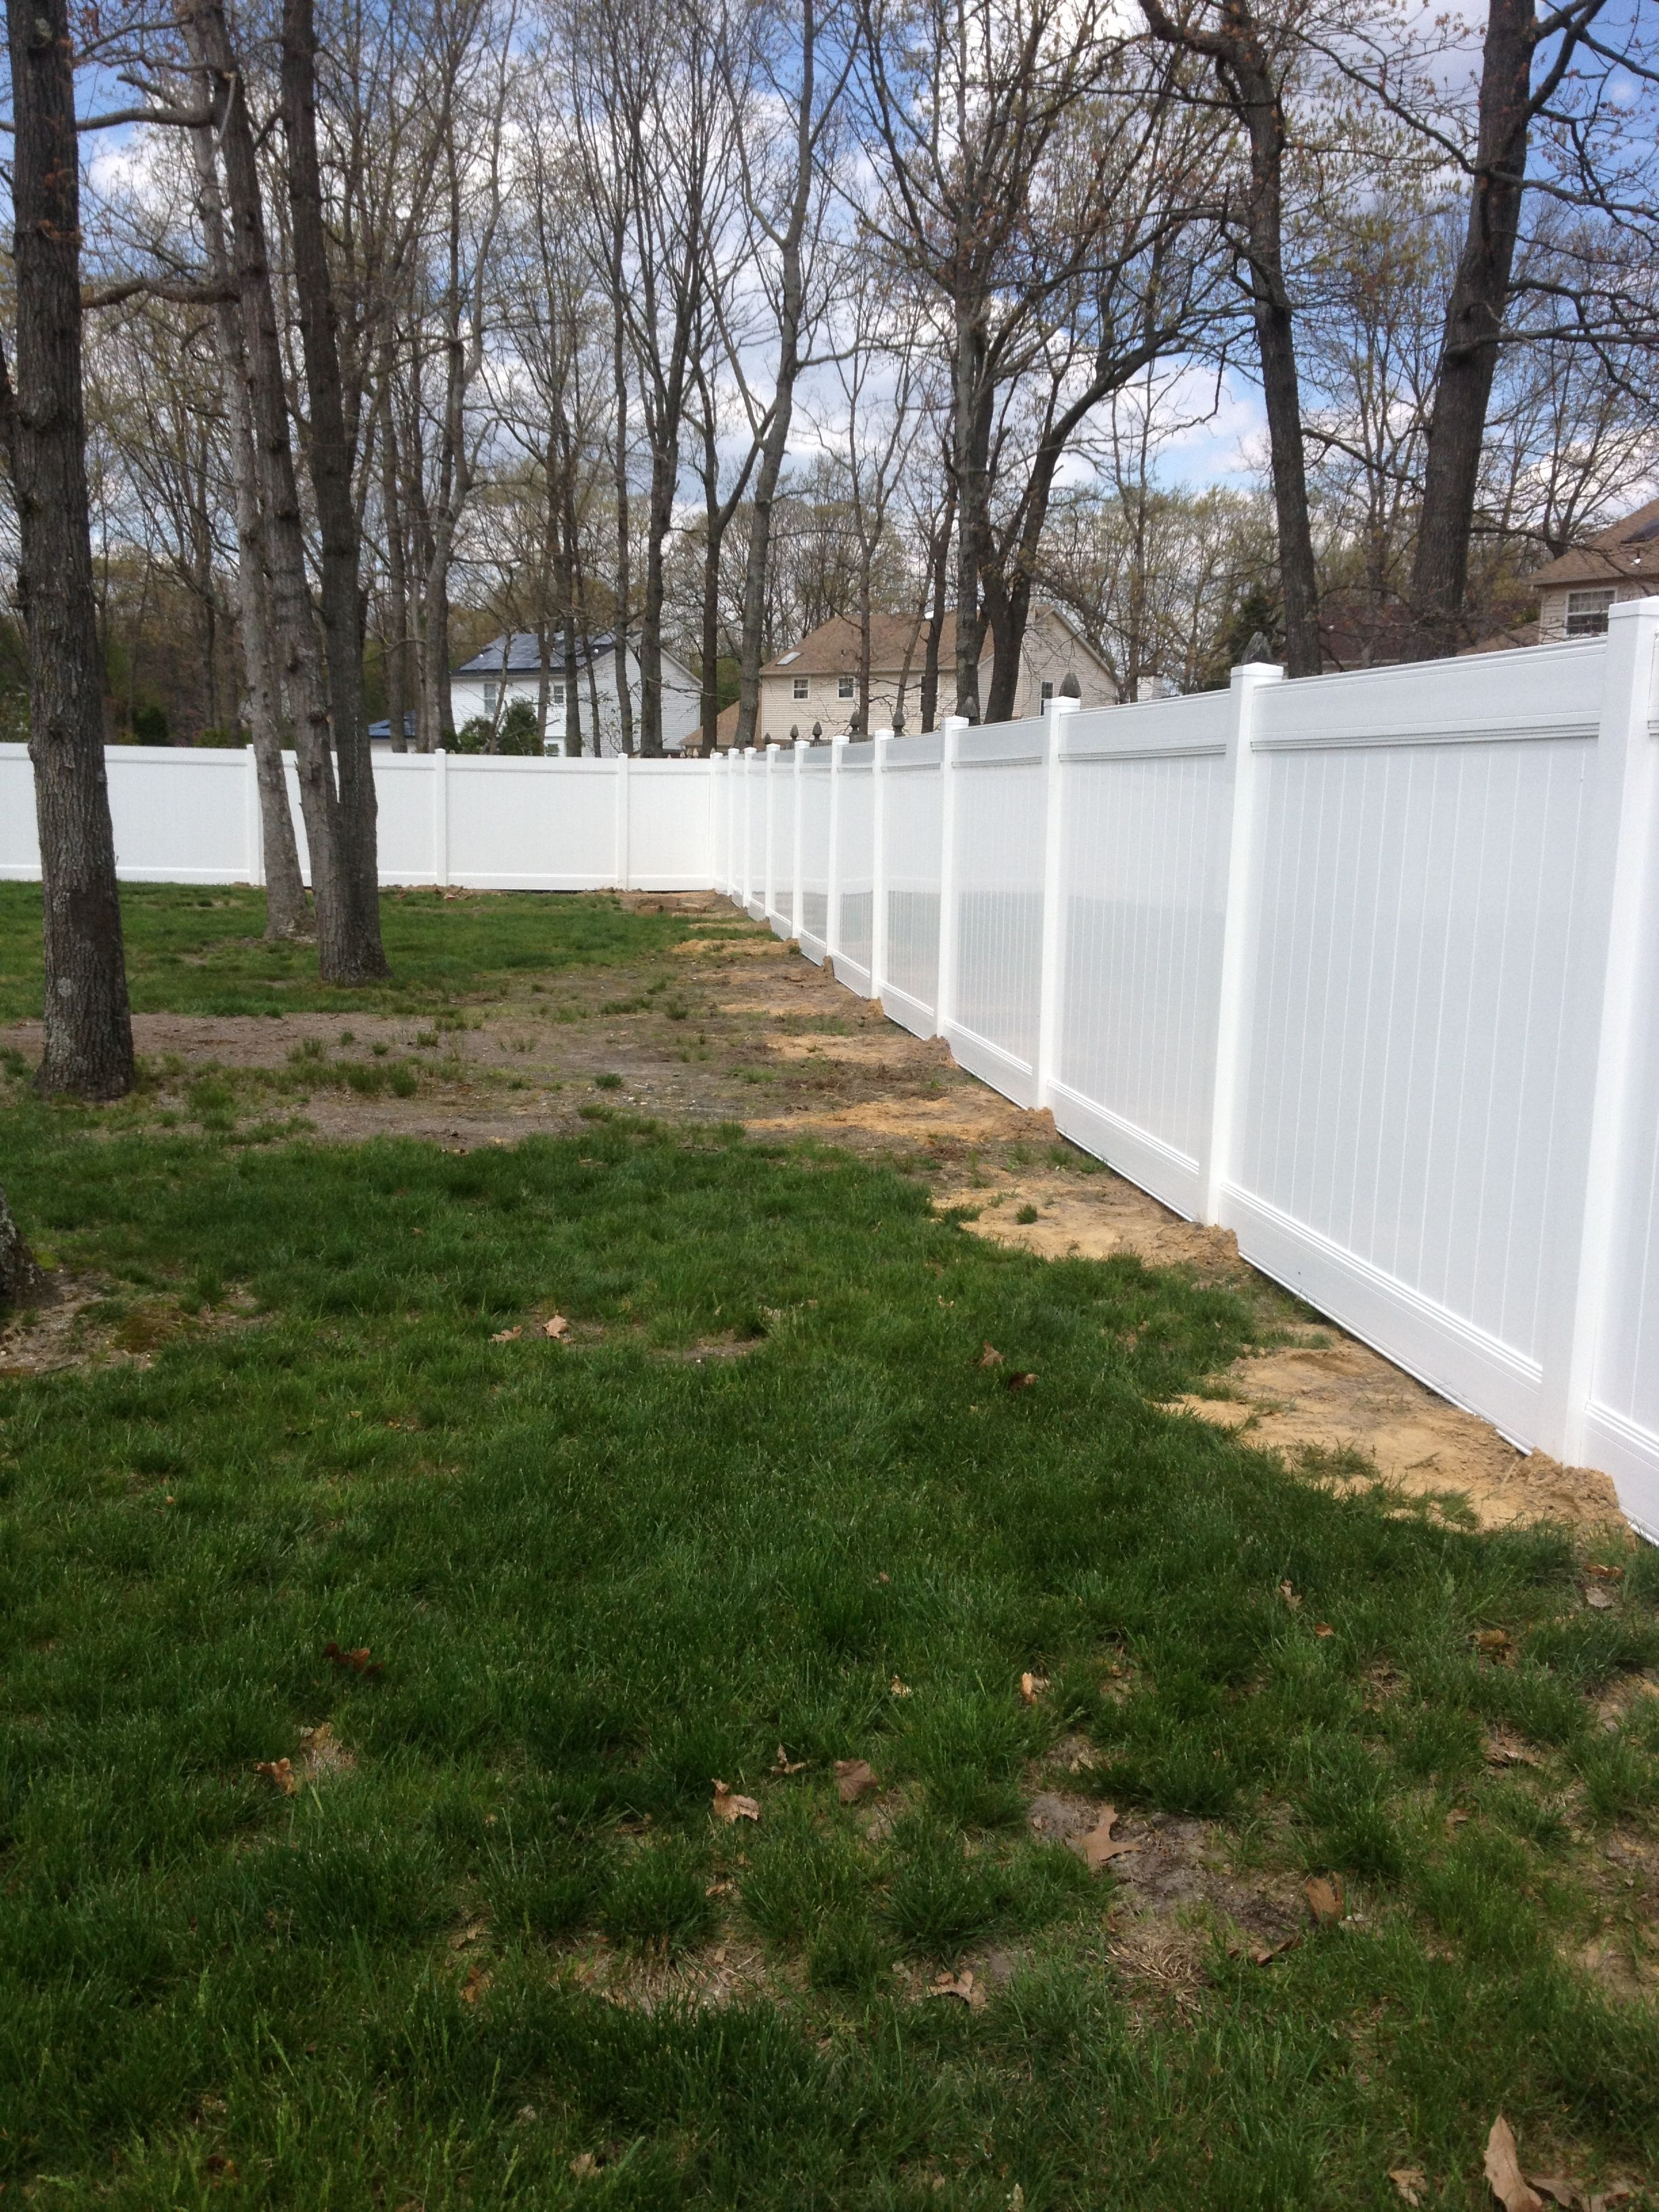 stupefying ideas: fence wall projects homemade dog fence.front yard